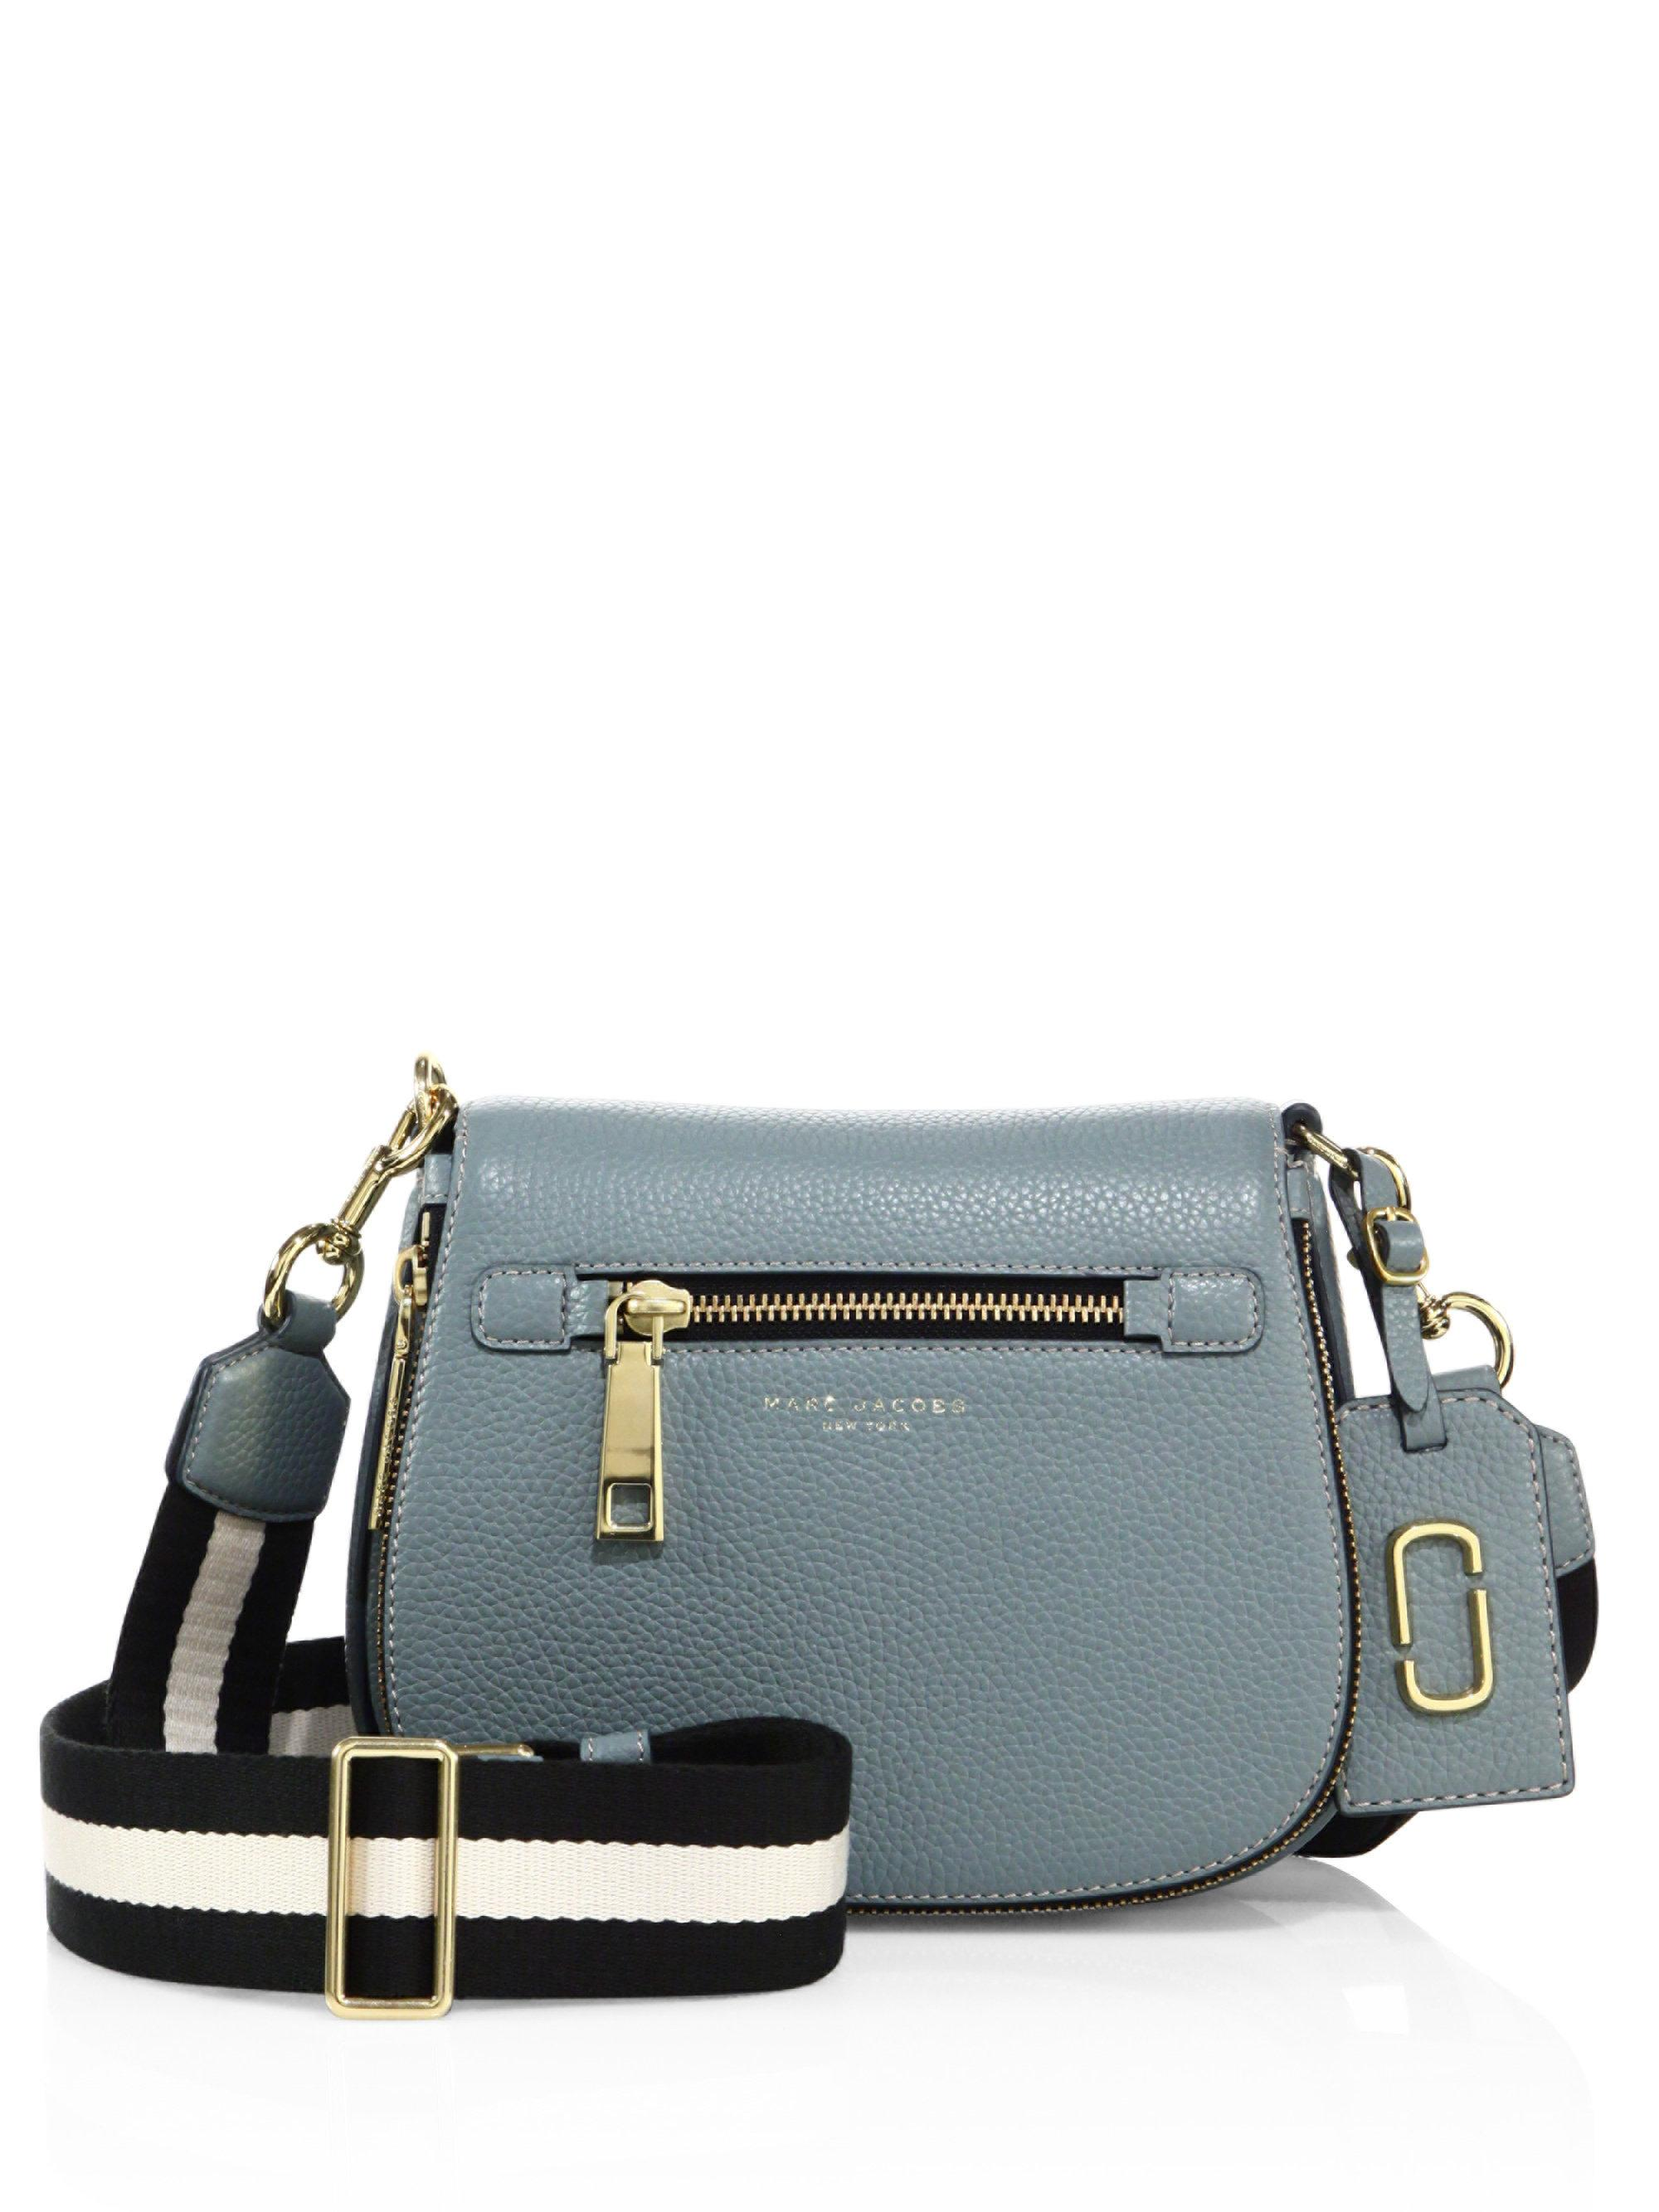 2179d8a3d219 Lyst - Marc Jacobs Gotham Small Leather Saddle Bag in Blue